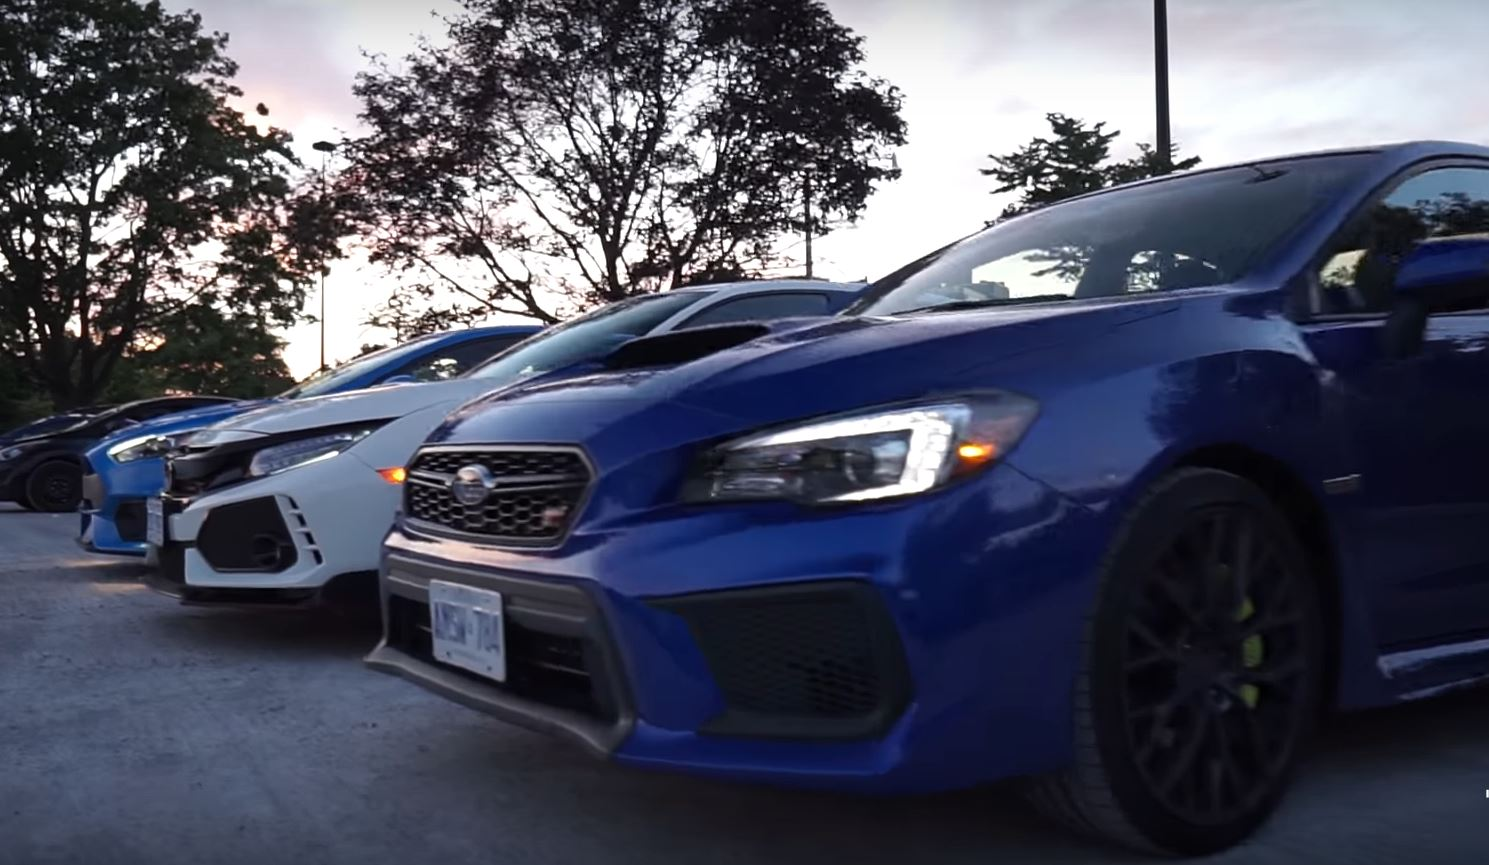 2018 subaru sti hatch.  Subaru 2018 Civic Type R Meets WRX STI And Focus RS In Subaru Sti Hatch